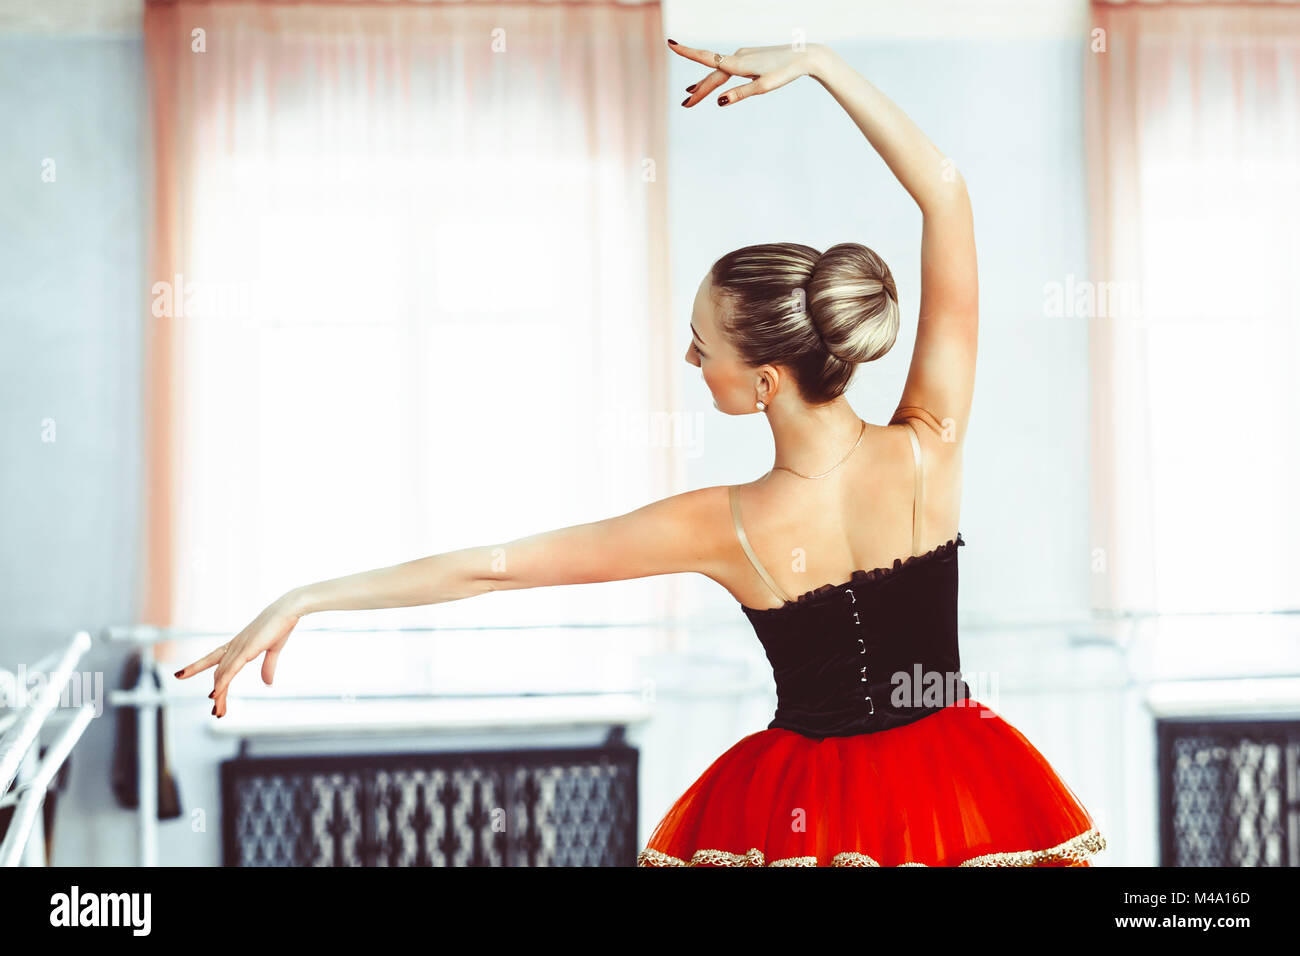 Classical Ballet dancer side view. Beautiful graceful ballerine practice ballet positions in tutu skirt near large - Stock Image